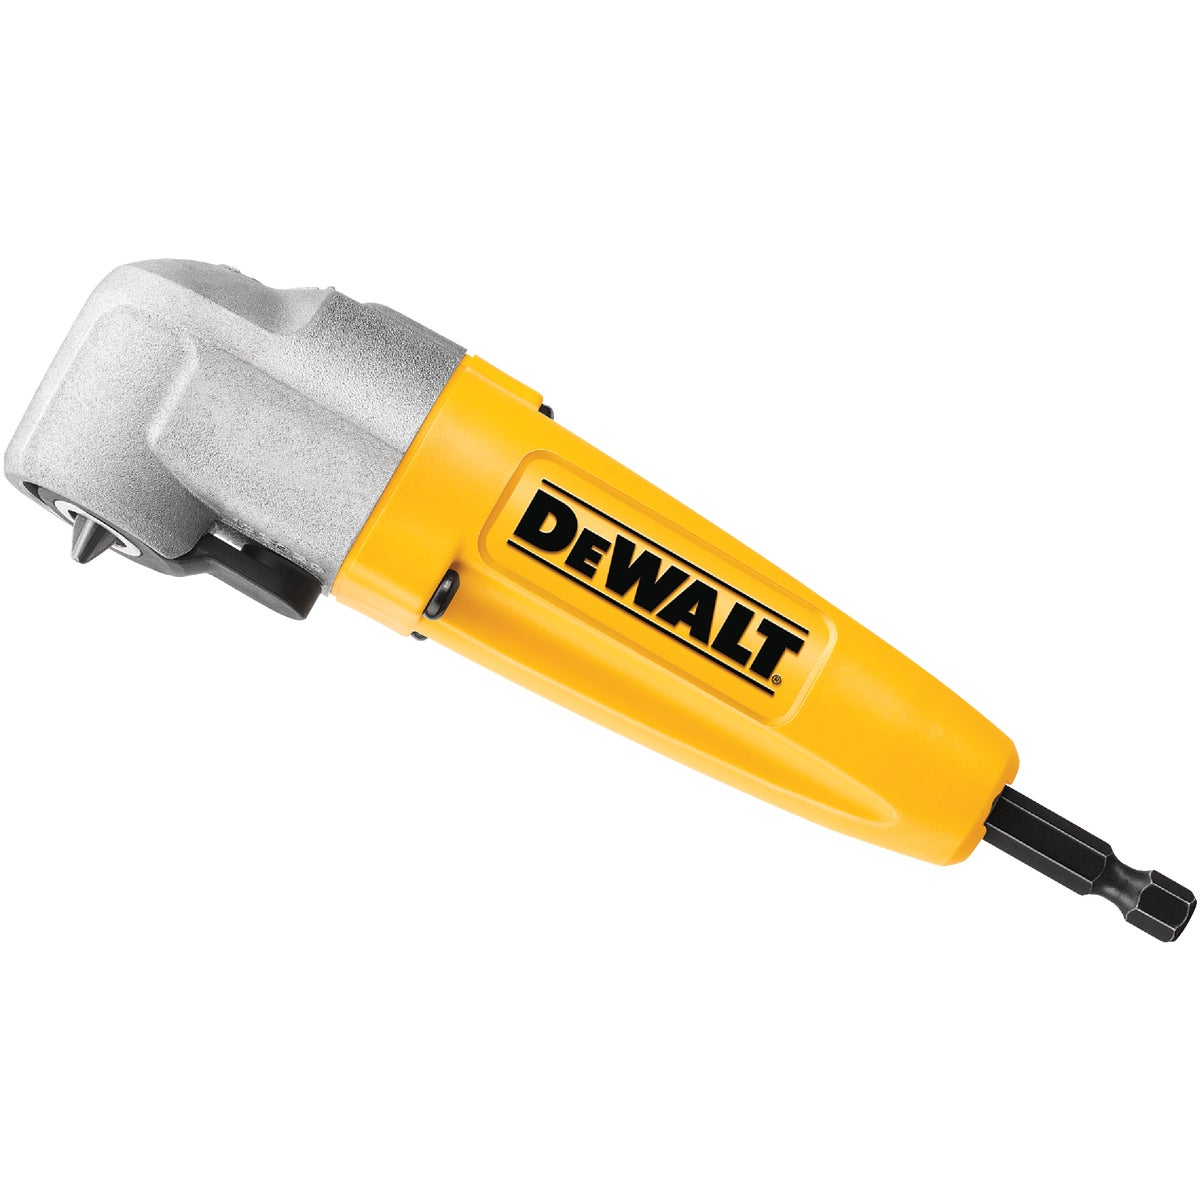 ATTACHMENT RIGHT ANGLE - DWARA100 by DeWalt